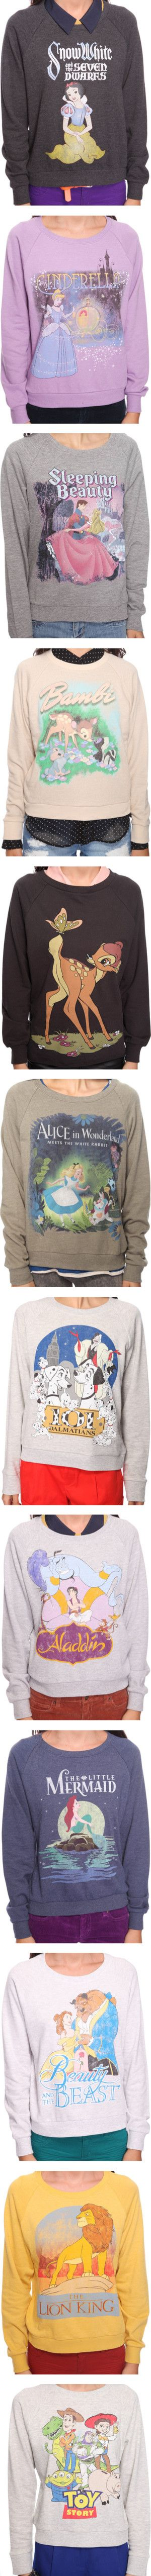 """""""Forever 21 Disney Sweatshirts"""" by scarscar93 ❤ liked on Polyvore"""